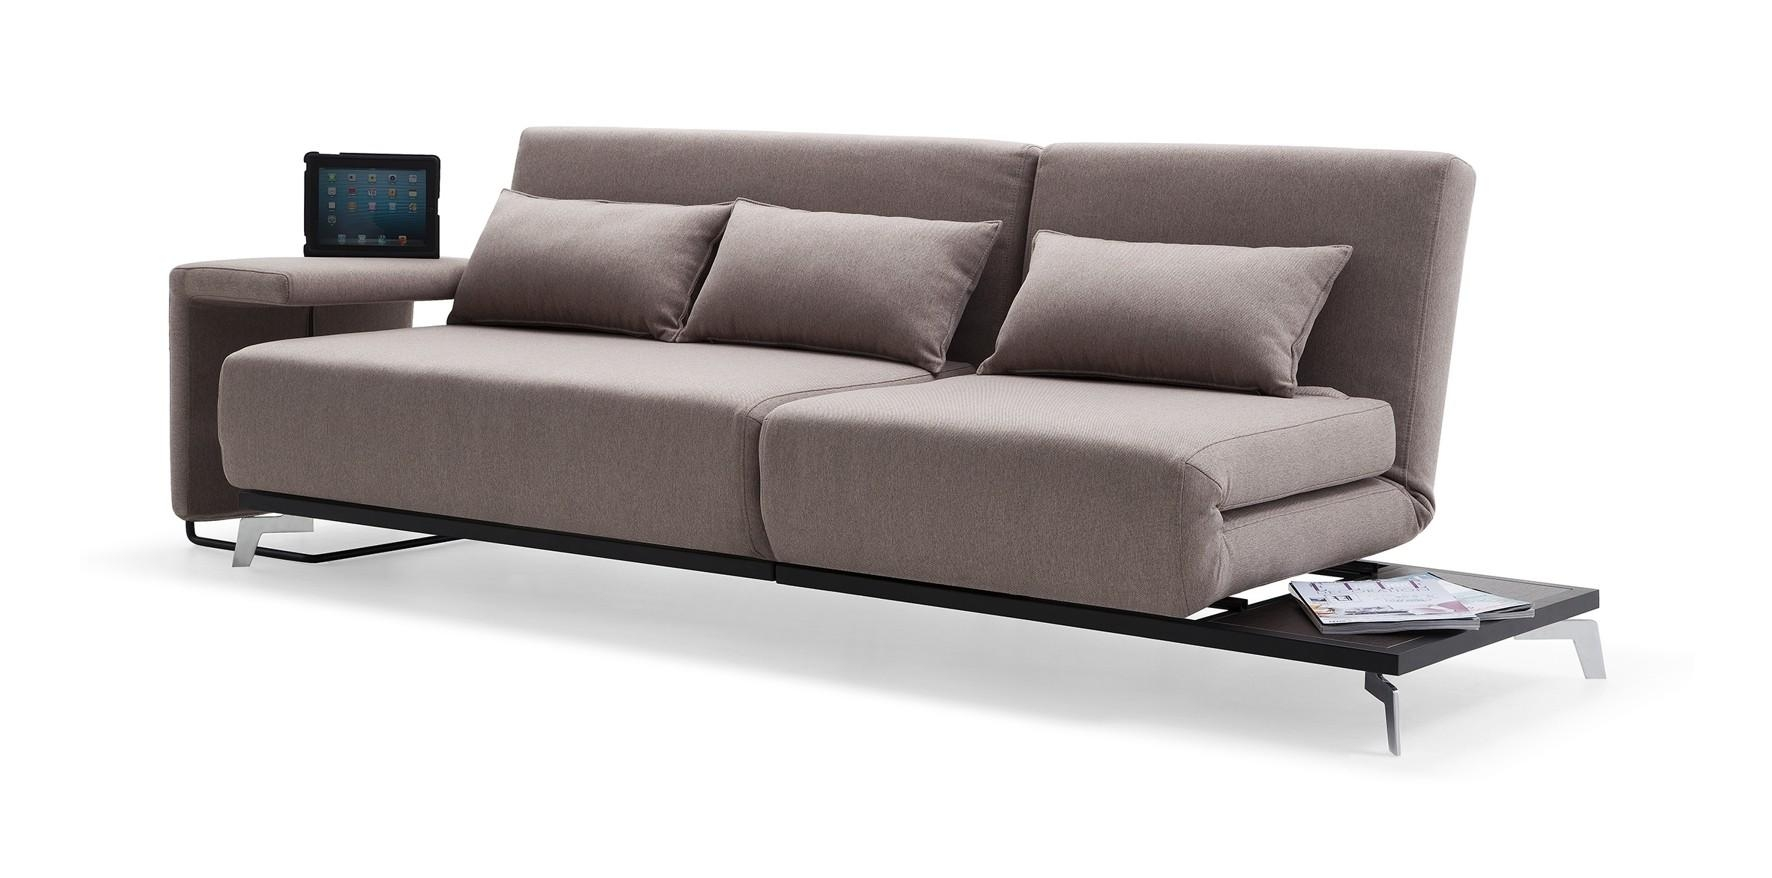 Modern Furniture Sofa Bed Within Small Modern Sofas (View 13 of 20)